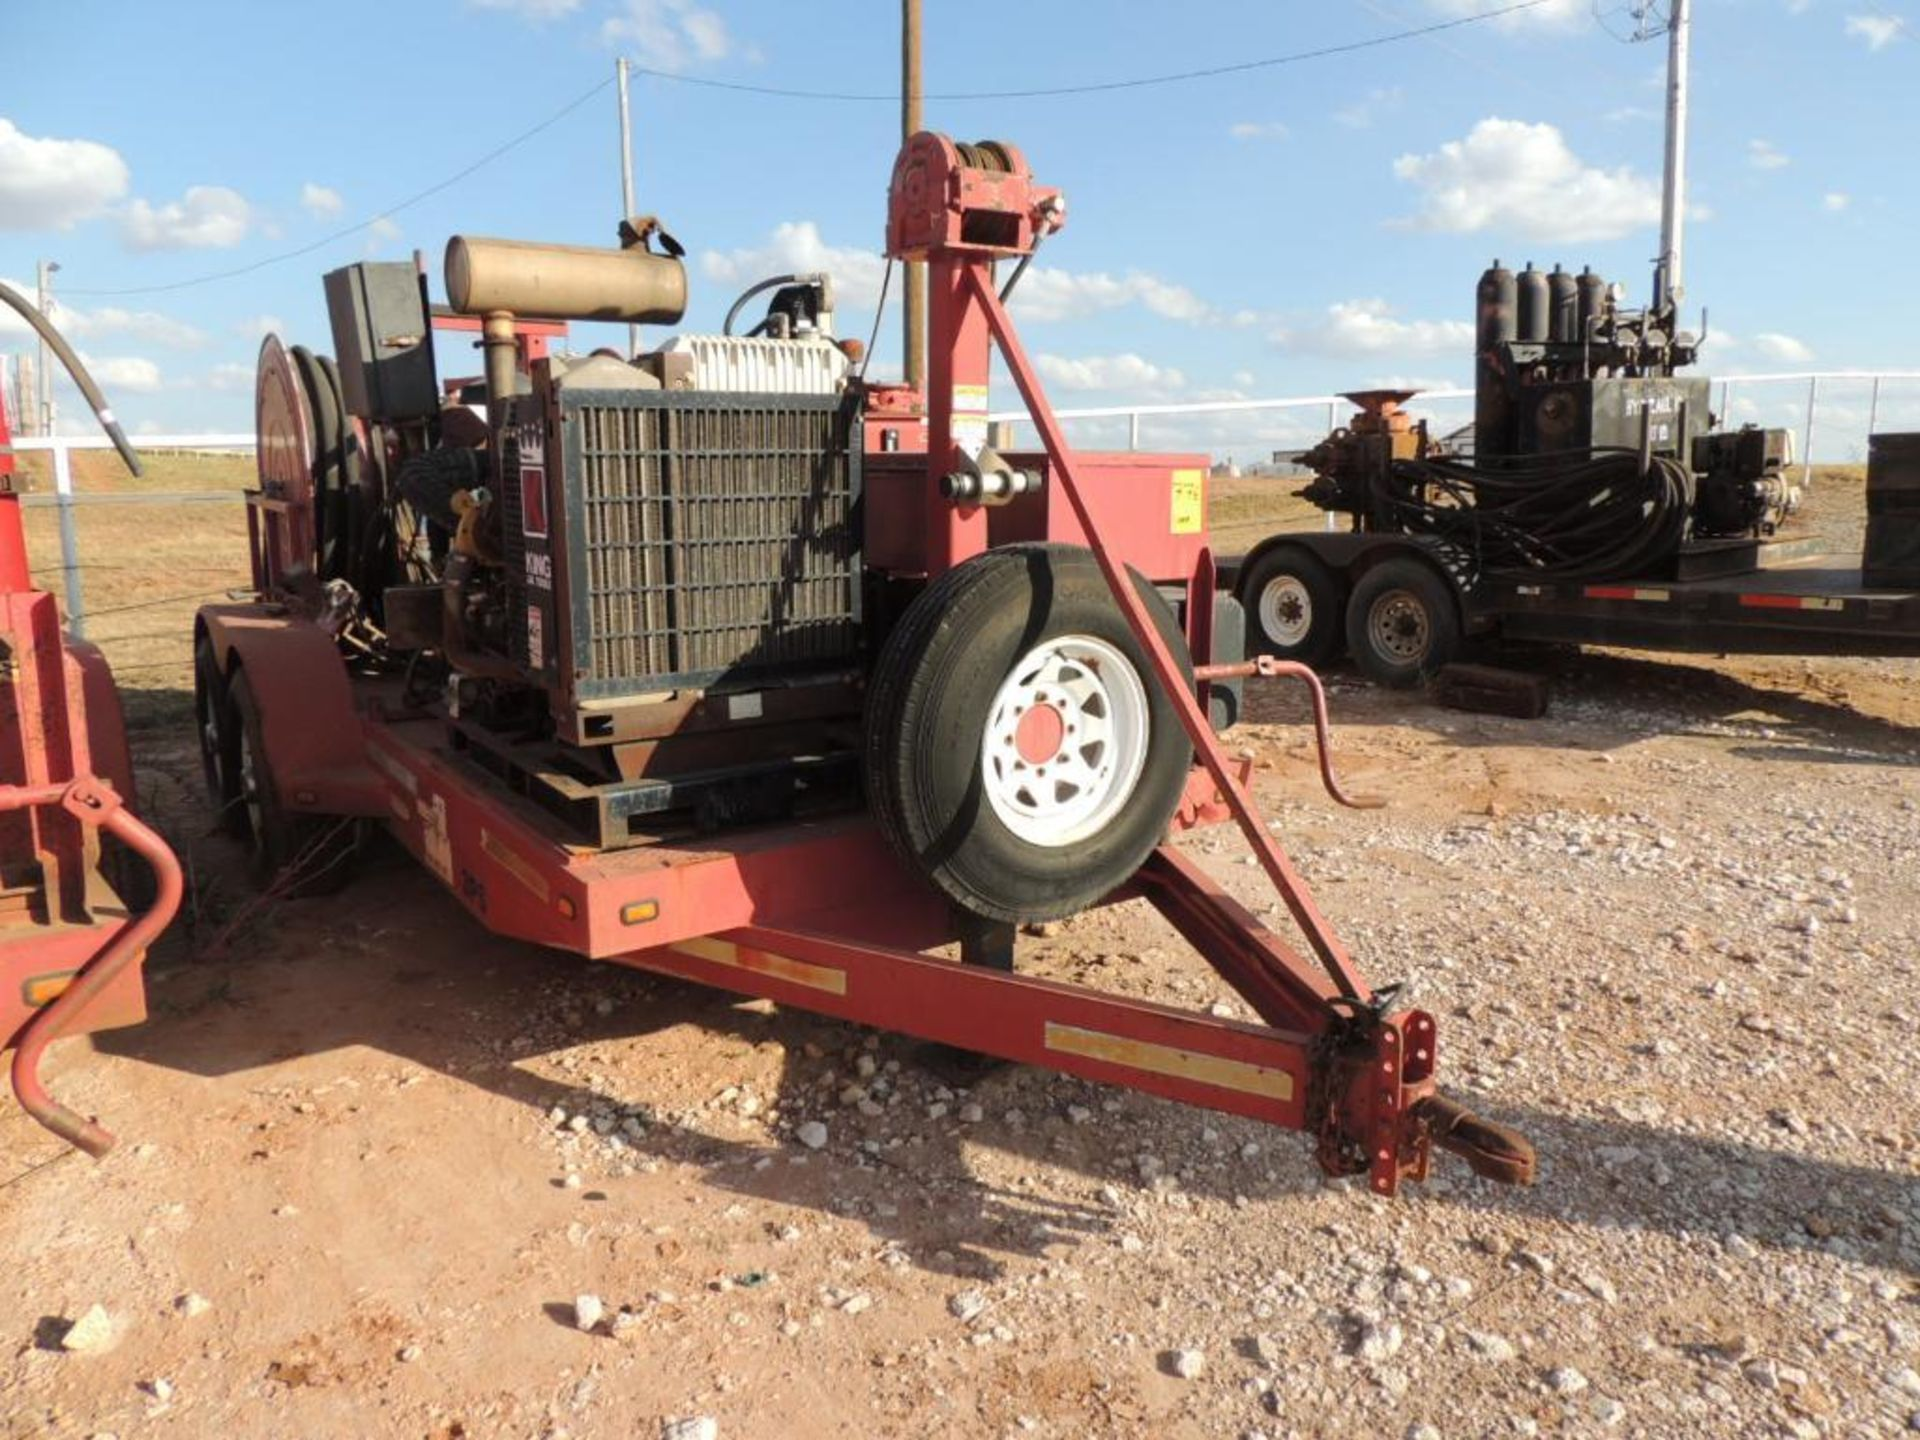 Power Swivel Trailer 2012 Springer Trailer 6 Ft. x 14 Ft. T/A, w/ King Oil Tools 3PS Rotary Drive - Image 2 of 5